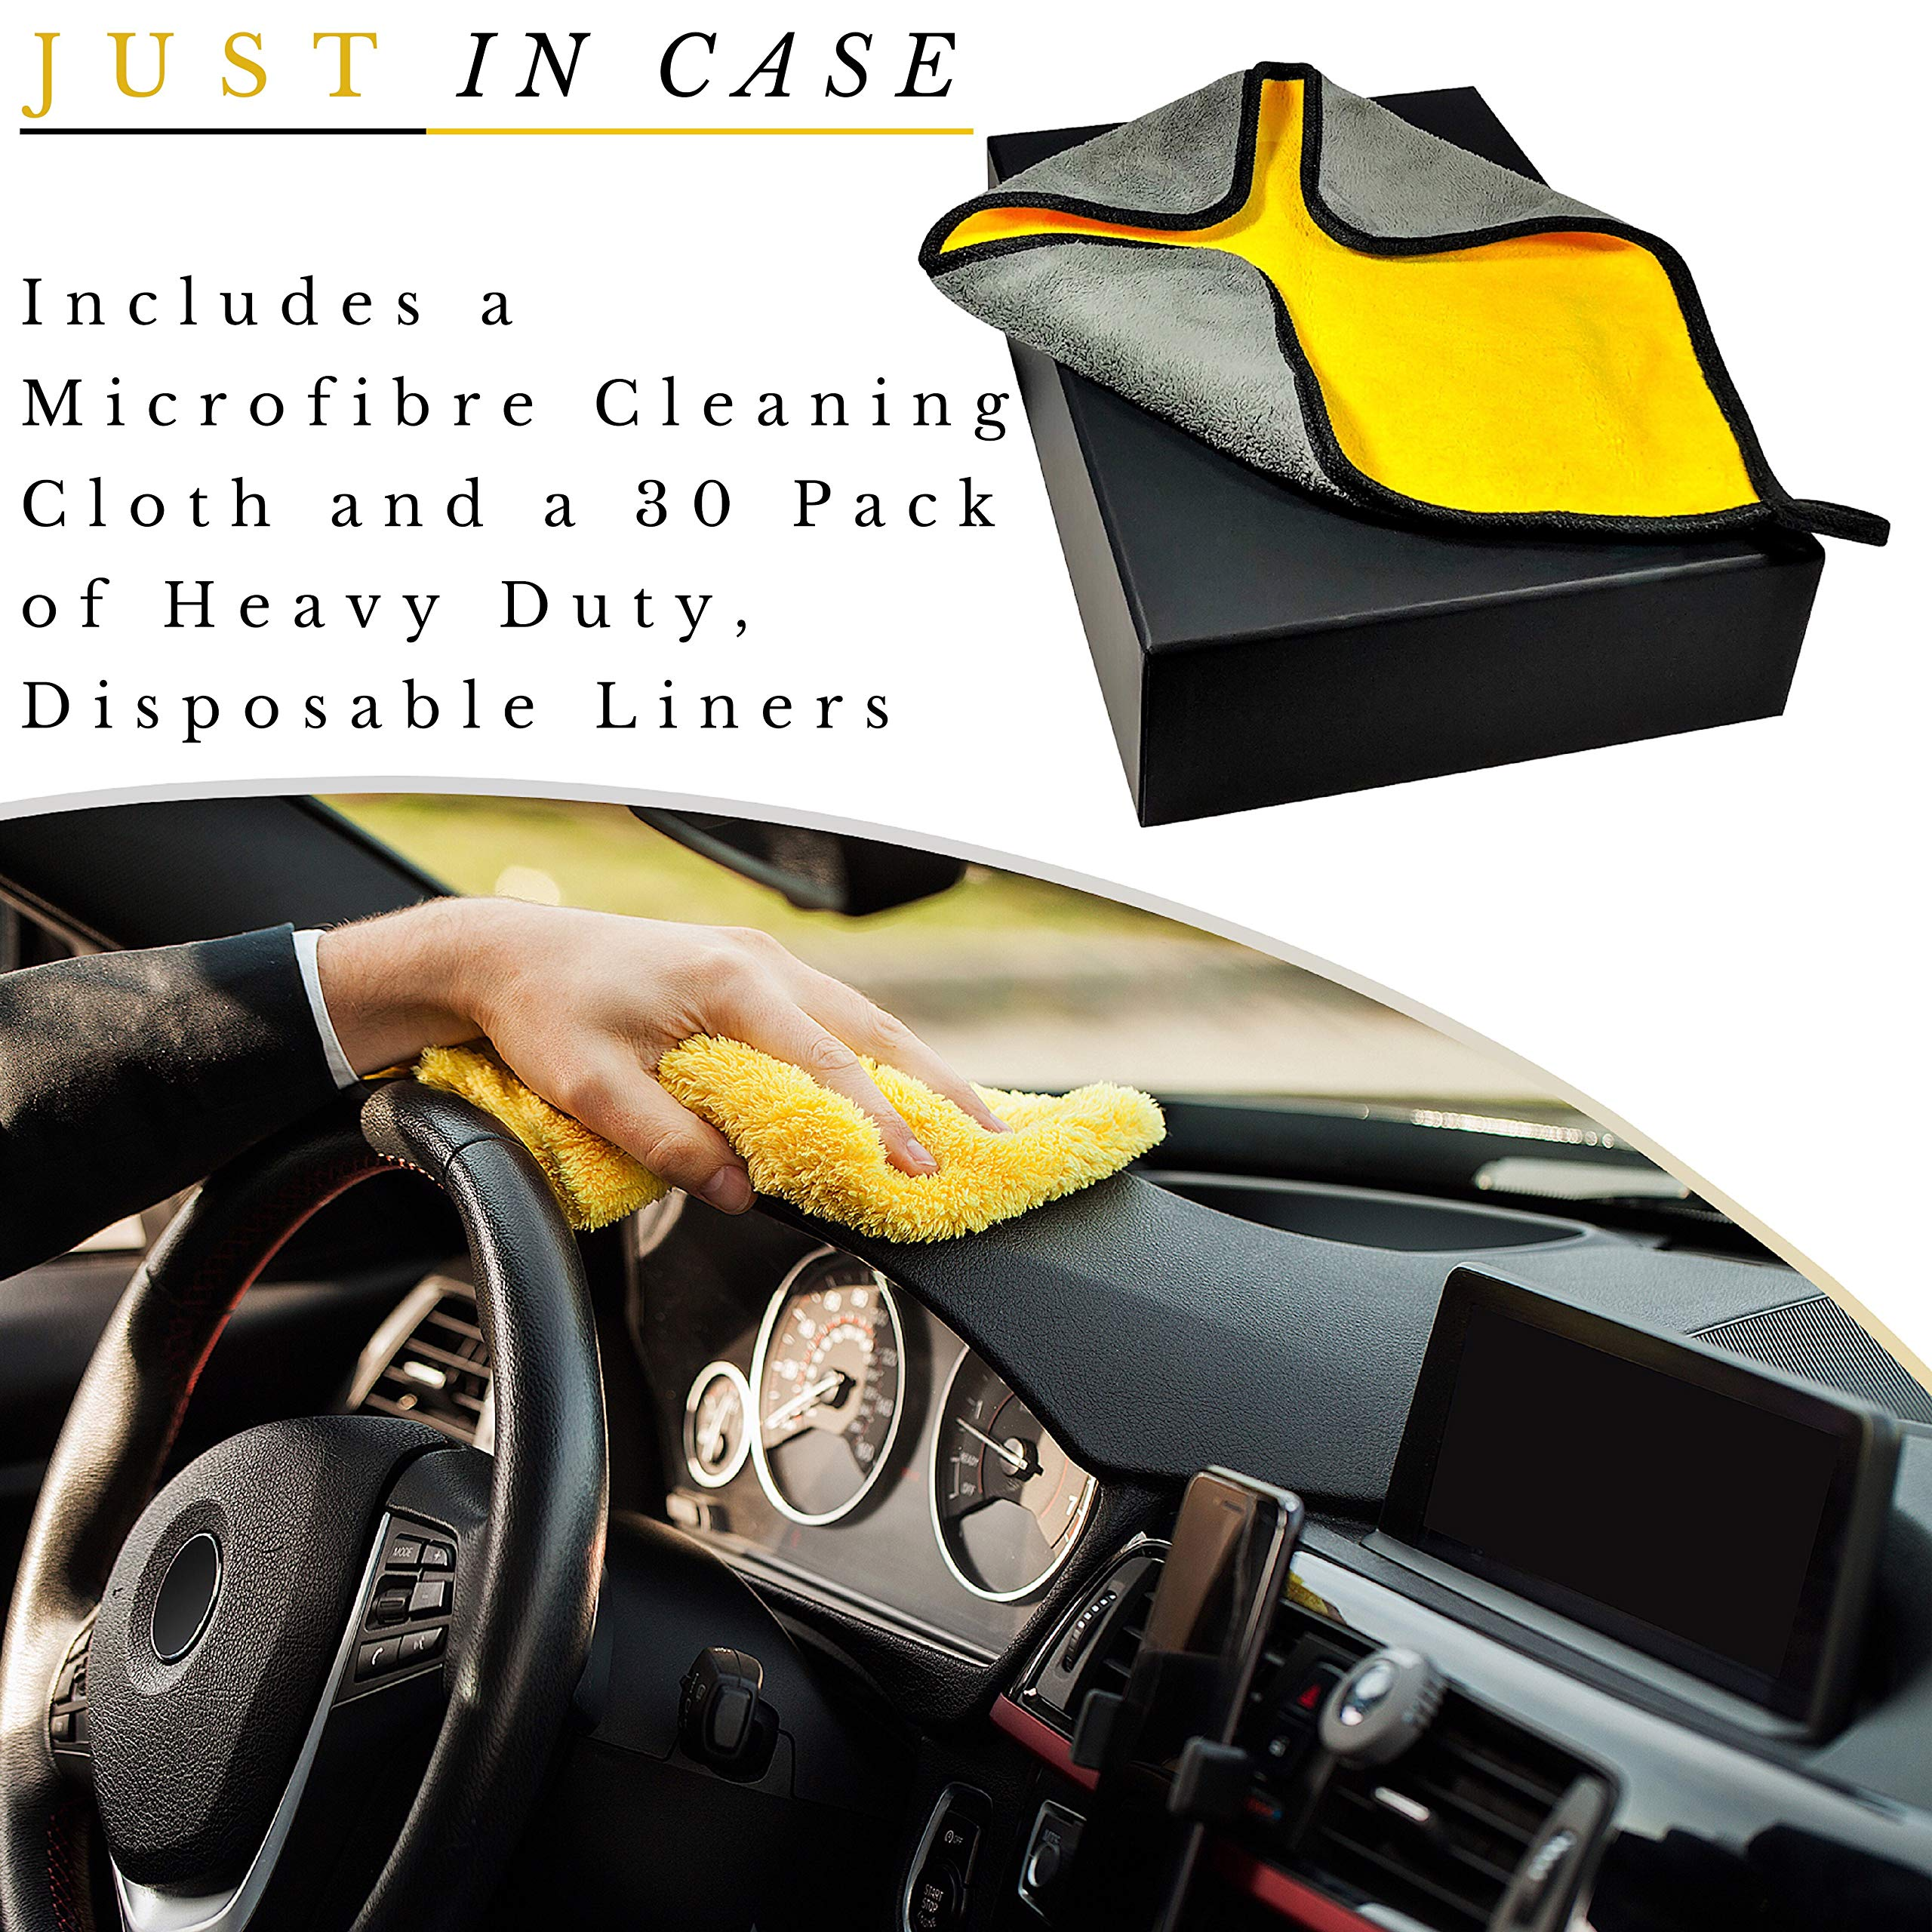 Car Trash Can - The Luxury Edition. No-Smell, Premium Leak Proof Construction & Watertight Liner Won't Cave, Spill, Tip or Contaminate Vehicle Guaranteed | Cleaning Cloth & 30 Disposable Liners by MB Innovations Group (Image #9)